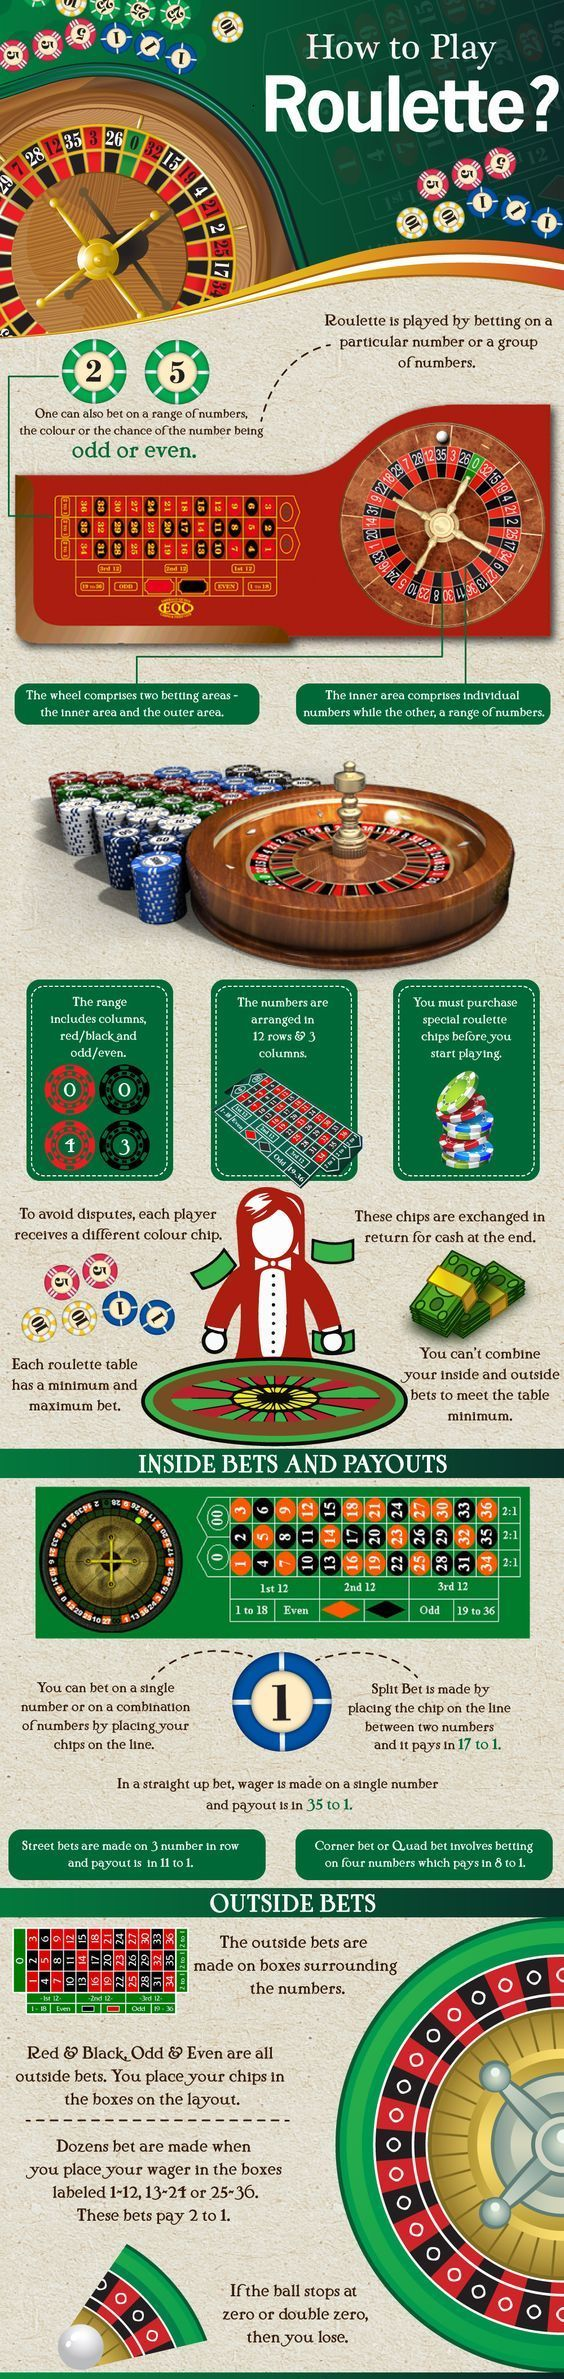 Wooden roulette buy black wooden roulette blackjack table led - Roulette Has Been Drawing In A Large Number Of Gambling Club Players For More Than 300 Years As Of Now And Is Thought To Be The Most Prevalent Table